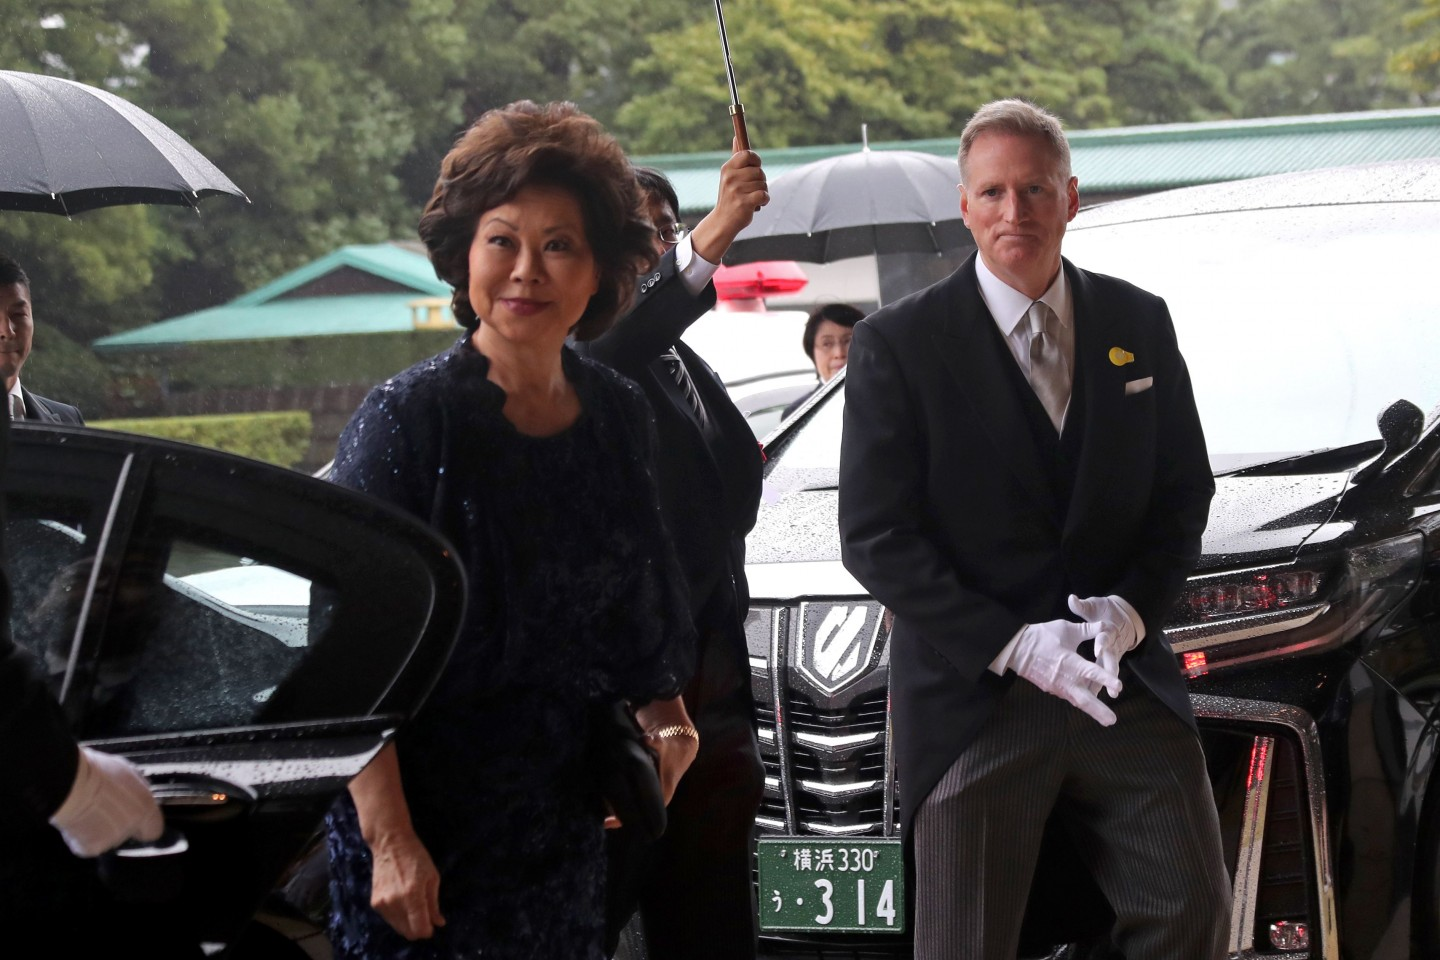 US Transportation Secretary Elaine Chao arrives at the Imperial Palace to attend the proclamation ceremony of Japan's Emperor Naruhito's ascension to the throne in Tokyo on October 22, 2019. (Photo by Koji Sasahara / POOL / AFP)